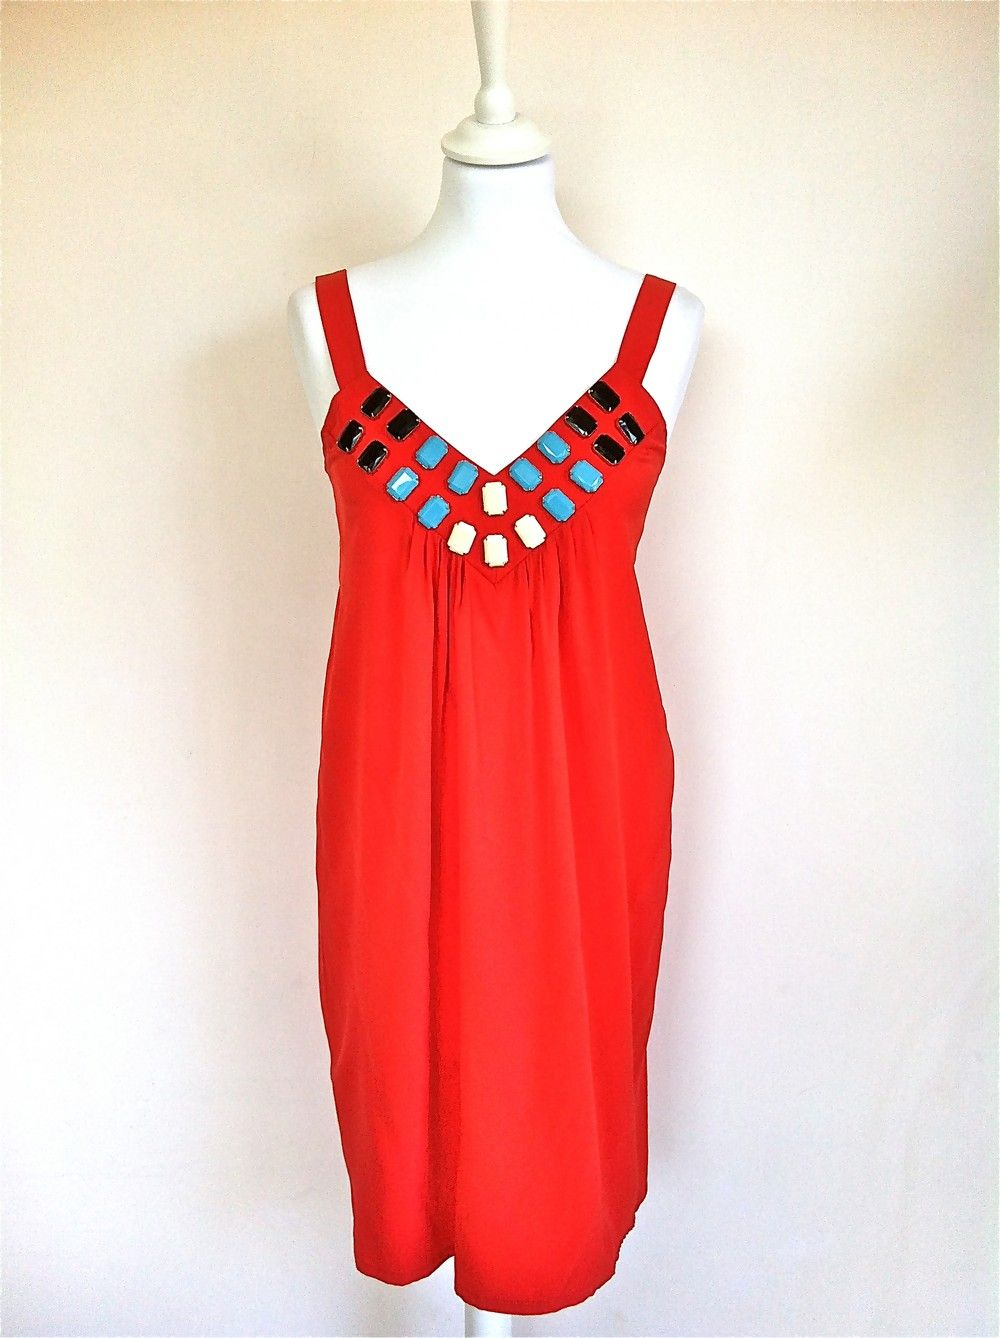 Prairie Coral Silk Sundress WIth Jewel Embellishments via The Queen Bee. Click on the image to see more!